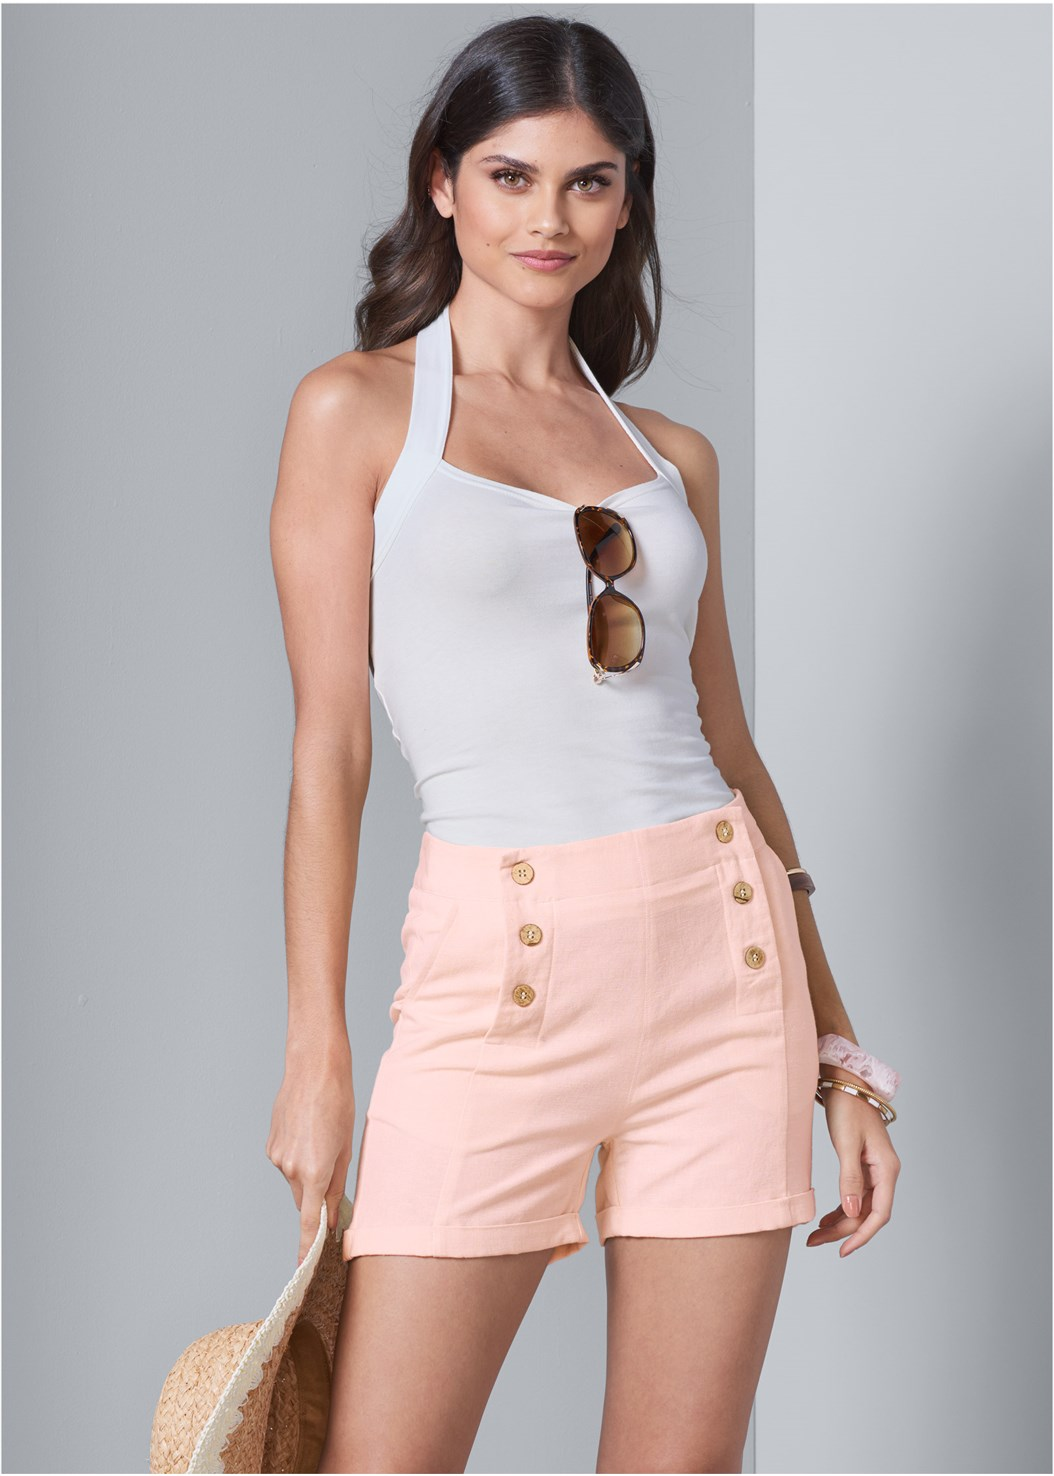 Button Detail Linen Shorts,Easy Halter Top,Lace Thong 3 For $19,Bead Detail Crochet Bag